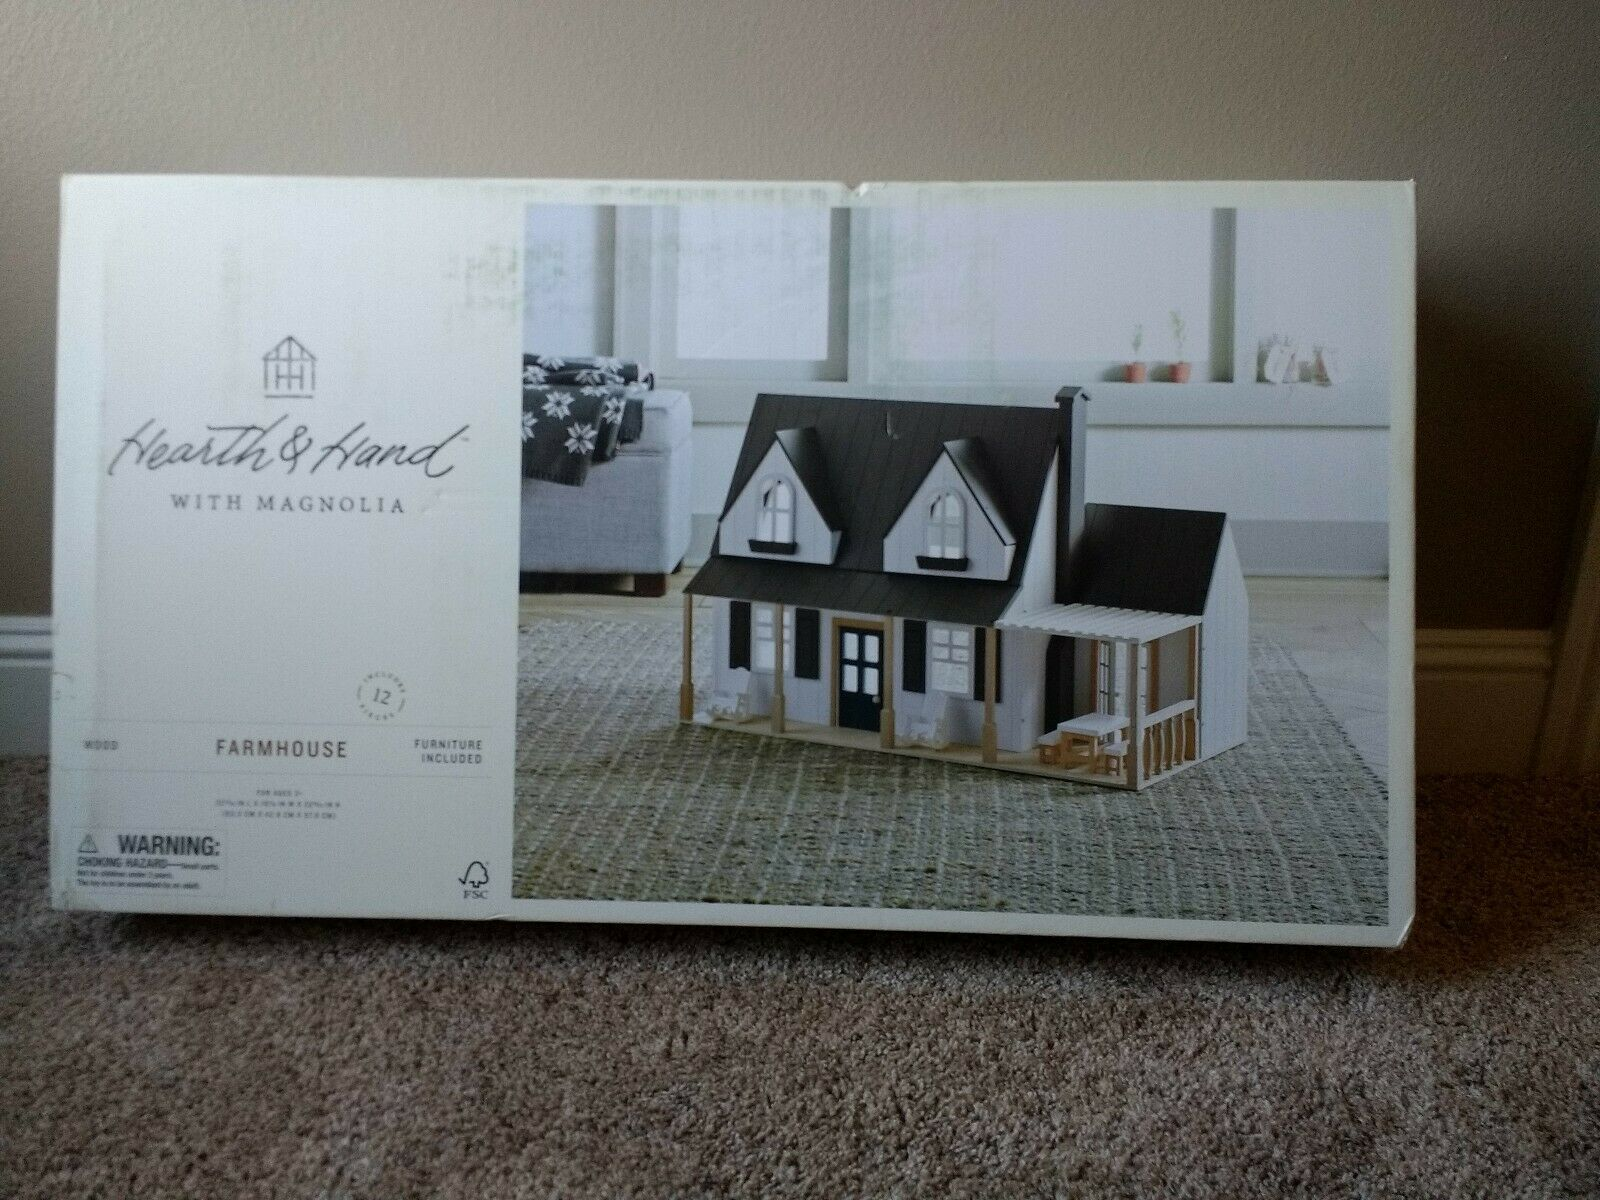 New Hearth And Hand With Magnolia Holz Spielzeug Doll haus Landwirtschafthaus Joanna Gaines